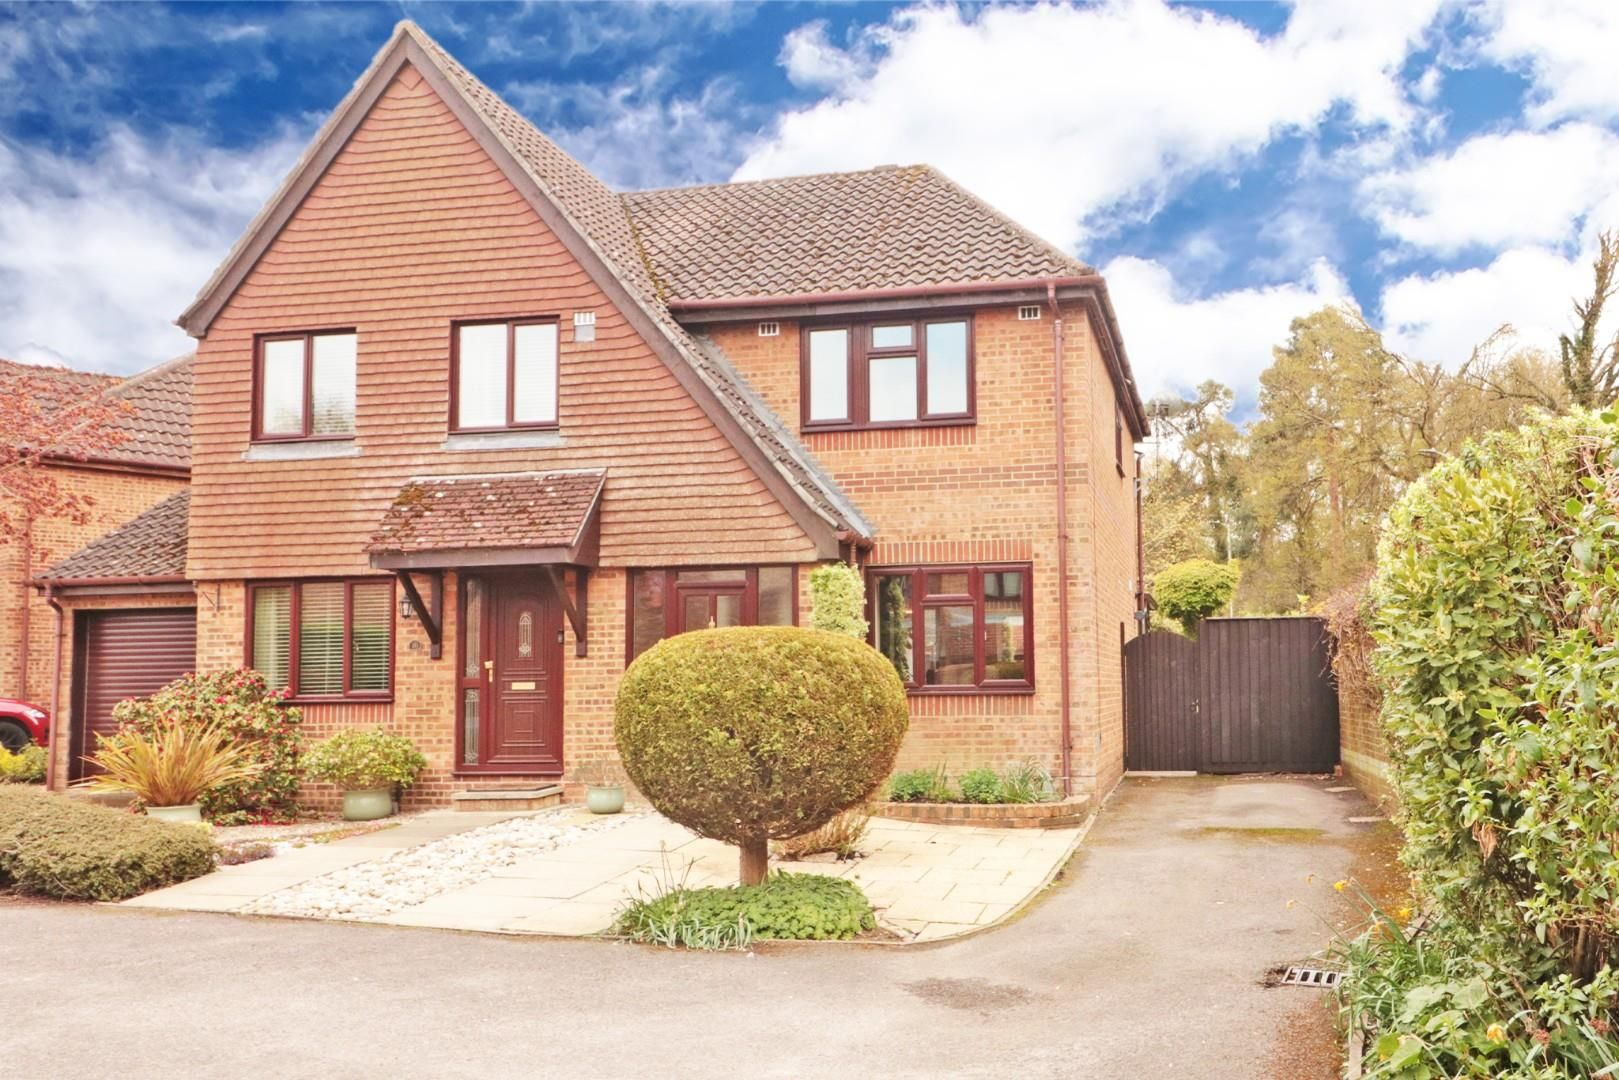 3 bed semi-detached for sale, RG12